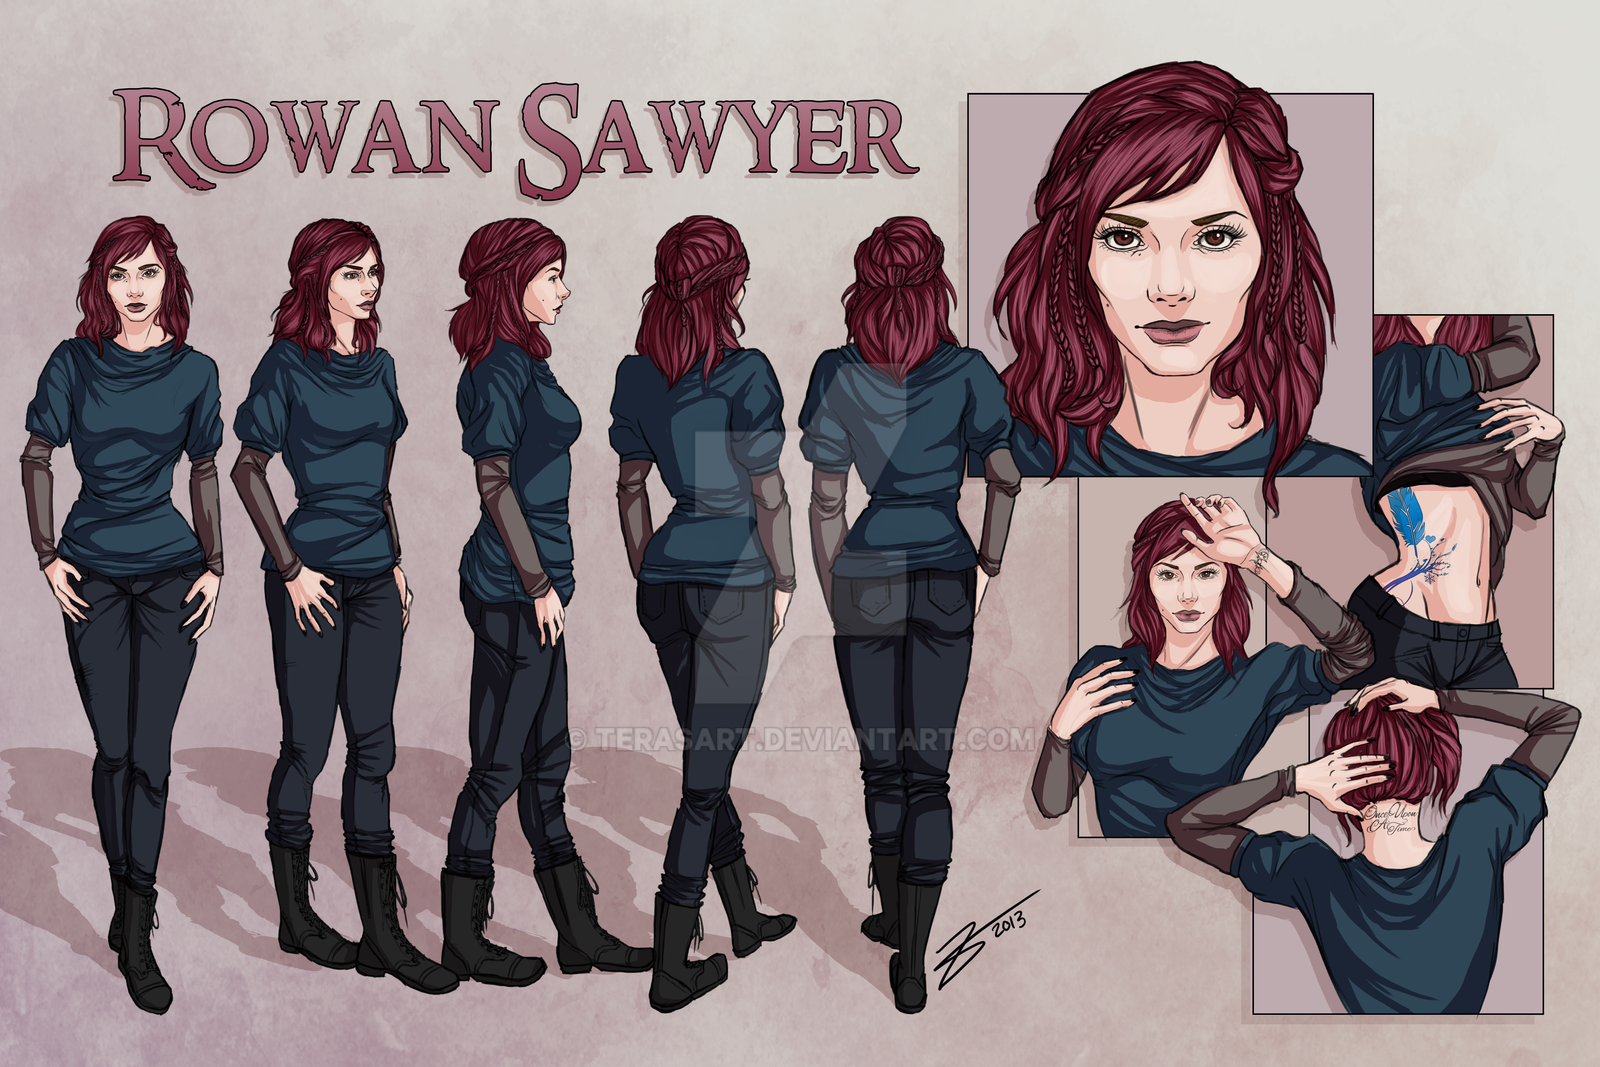 Nbos Character Sheet Designer Review : Rowan sawyer character reference sheet by terasart on